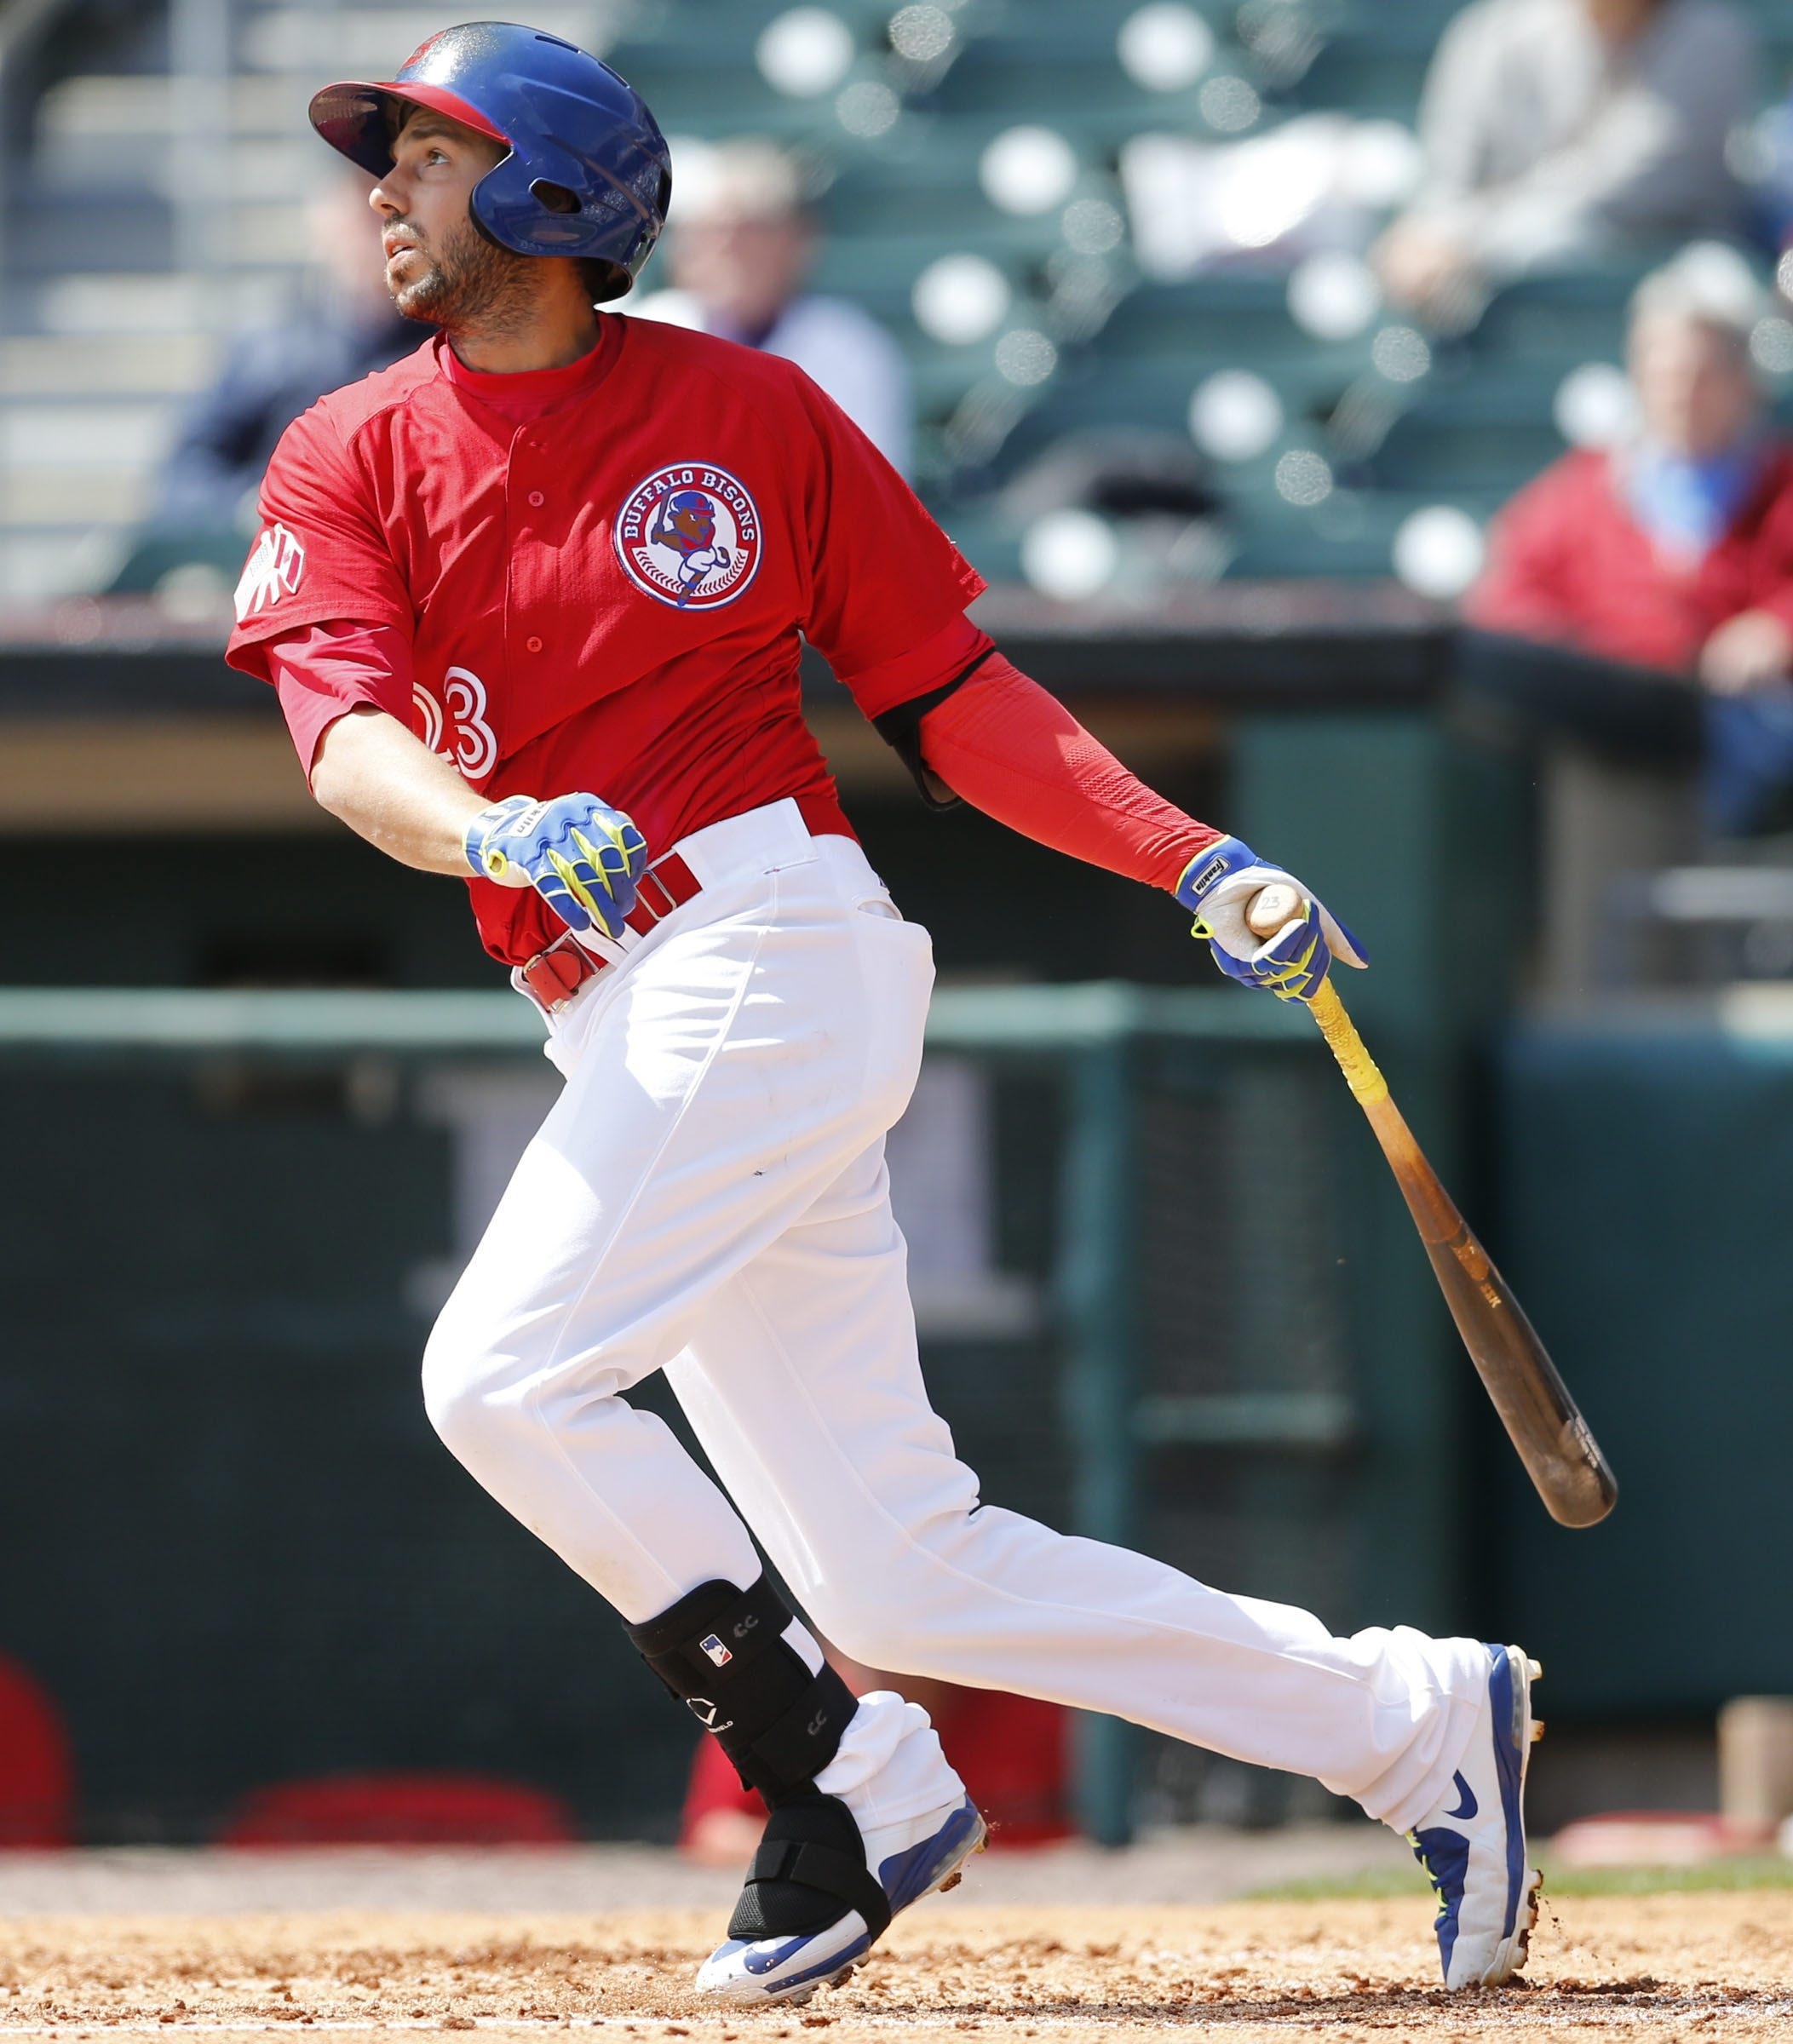 The Bisons' Chris Colabello will see plenty of Norfolk pitching during the homestand.